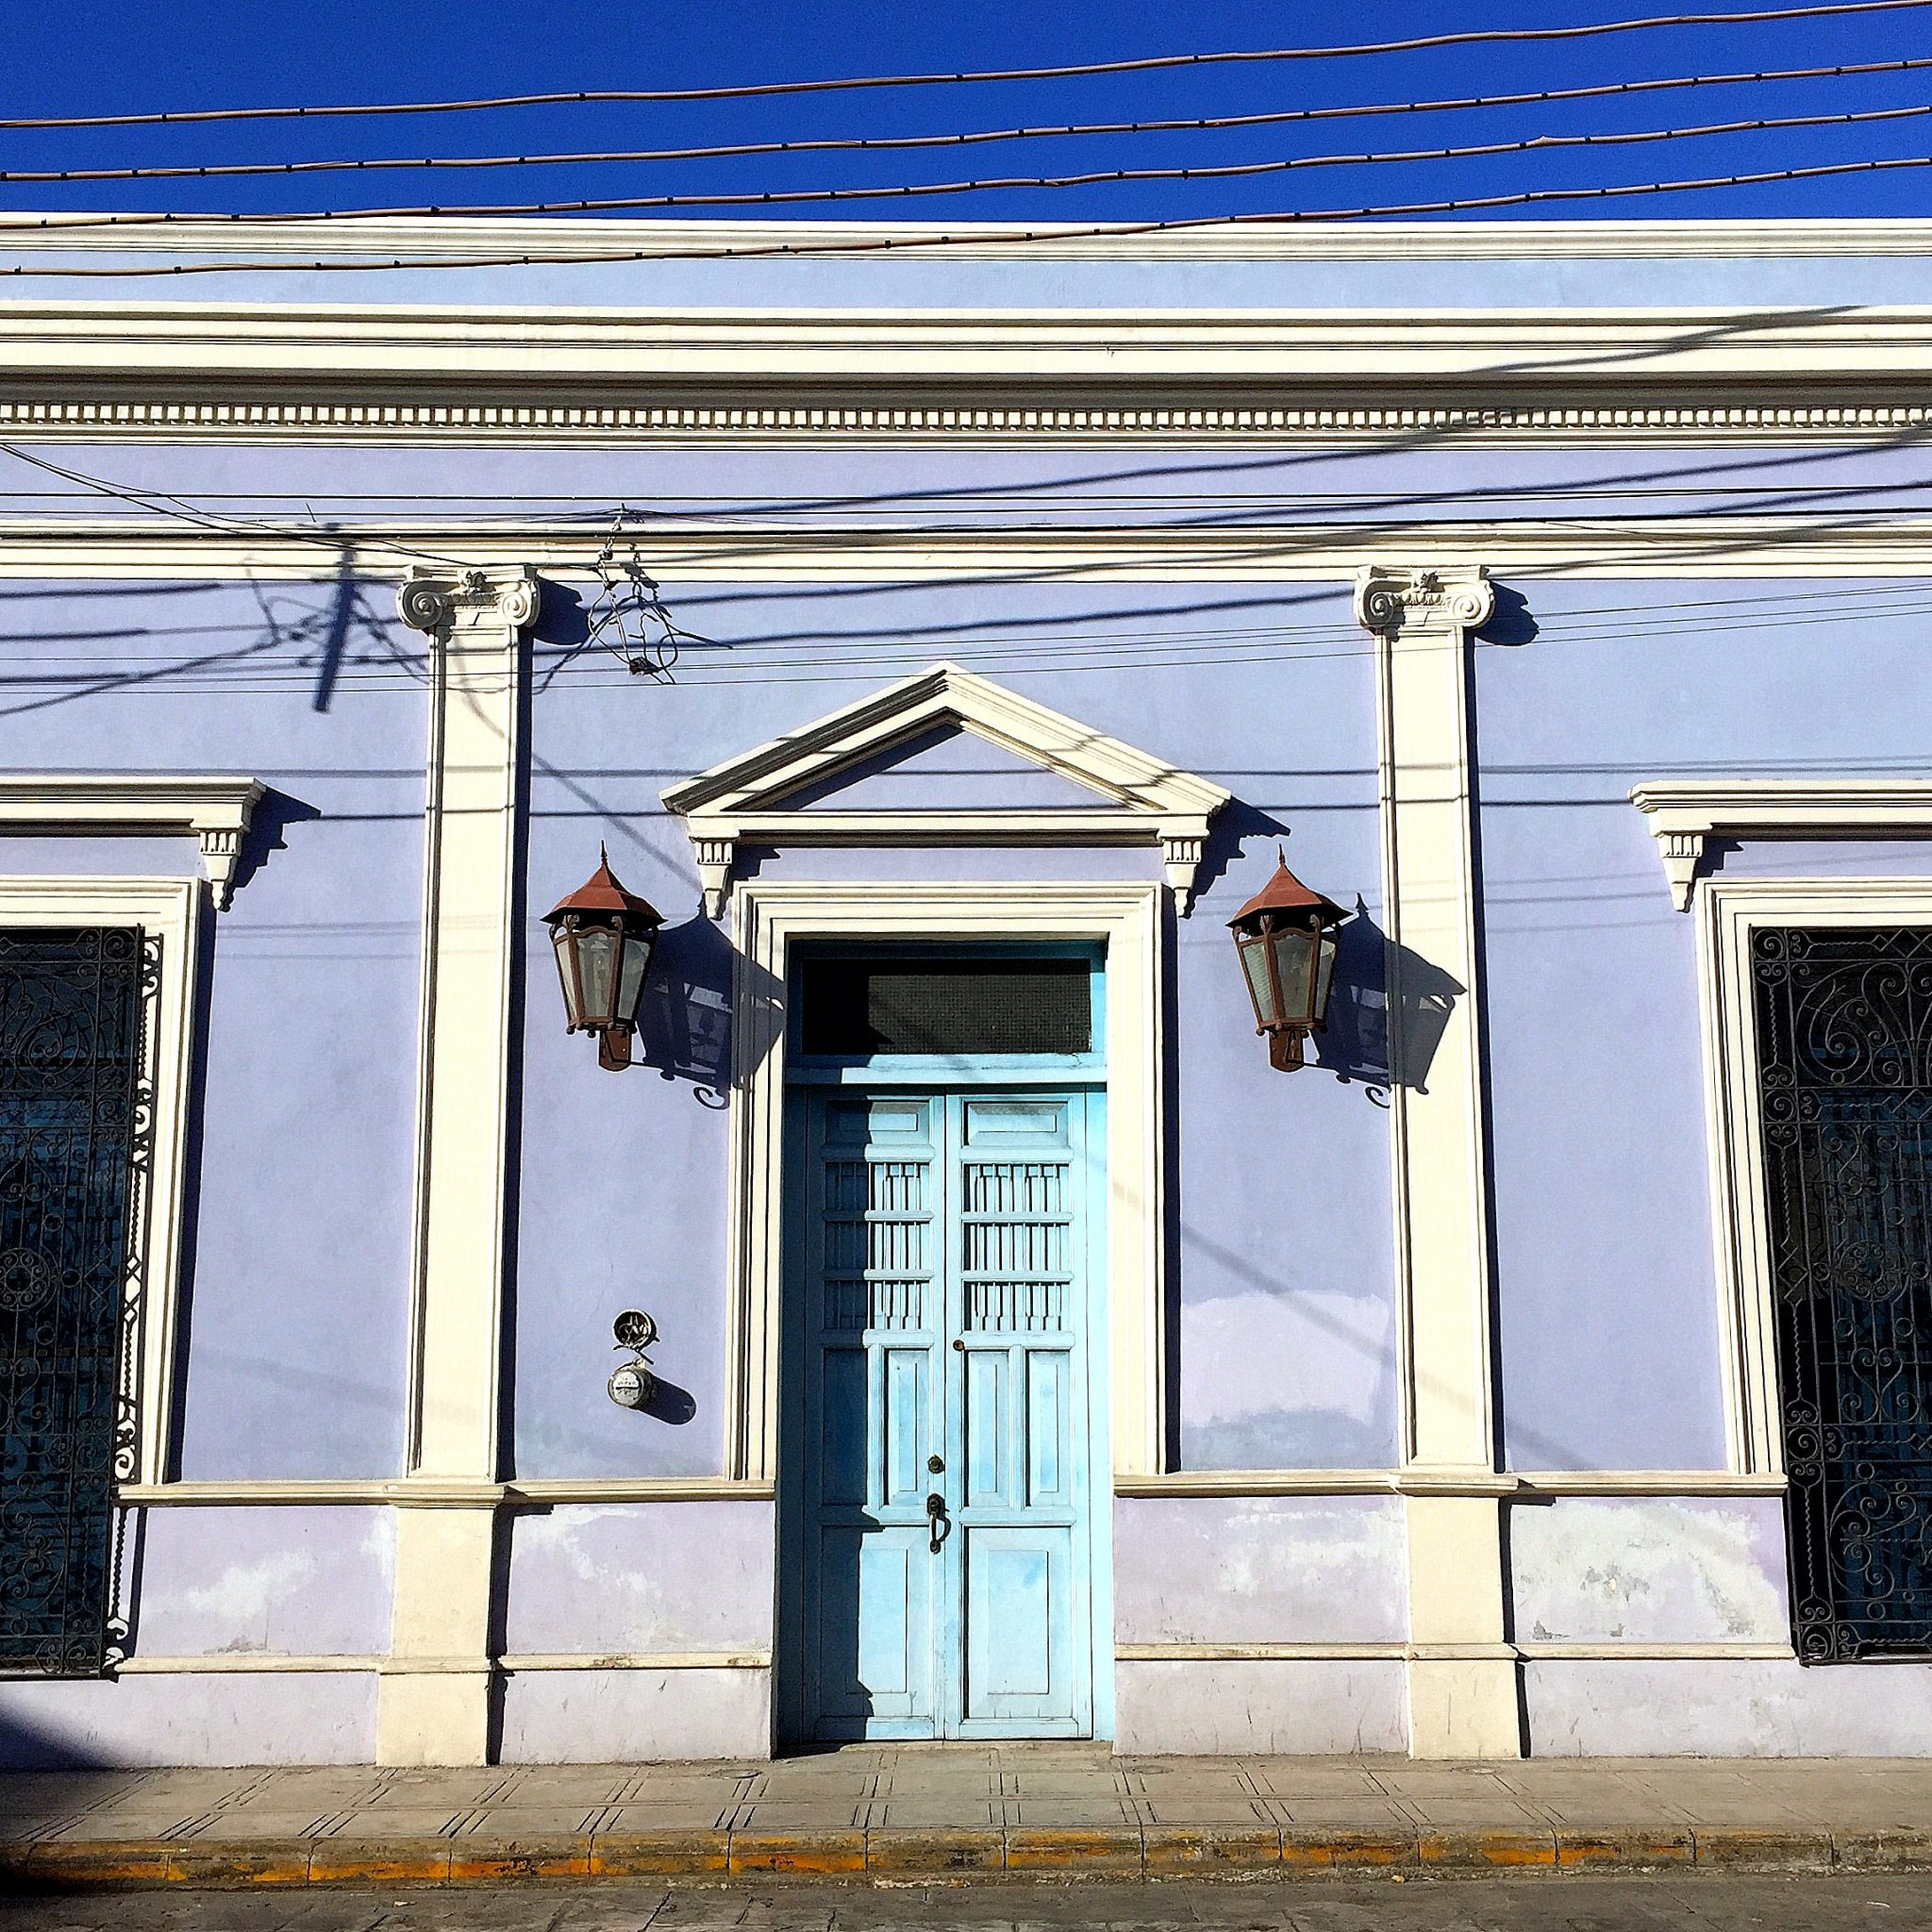 Mérida is quickly gaining in popularity, while preserving its colonial charm, Mayan heritage, and excelling in environmentally-friendly efforts.